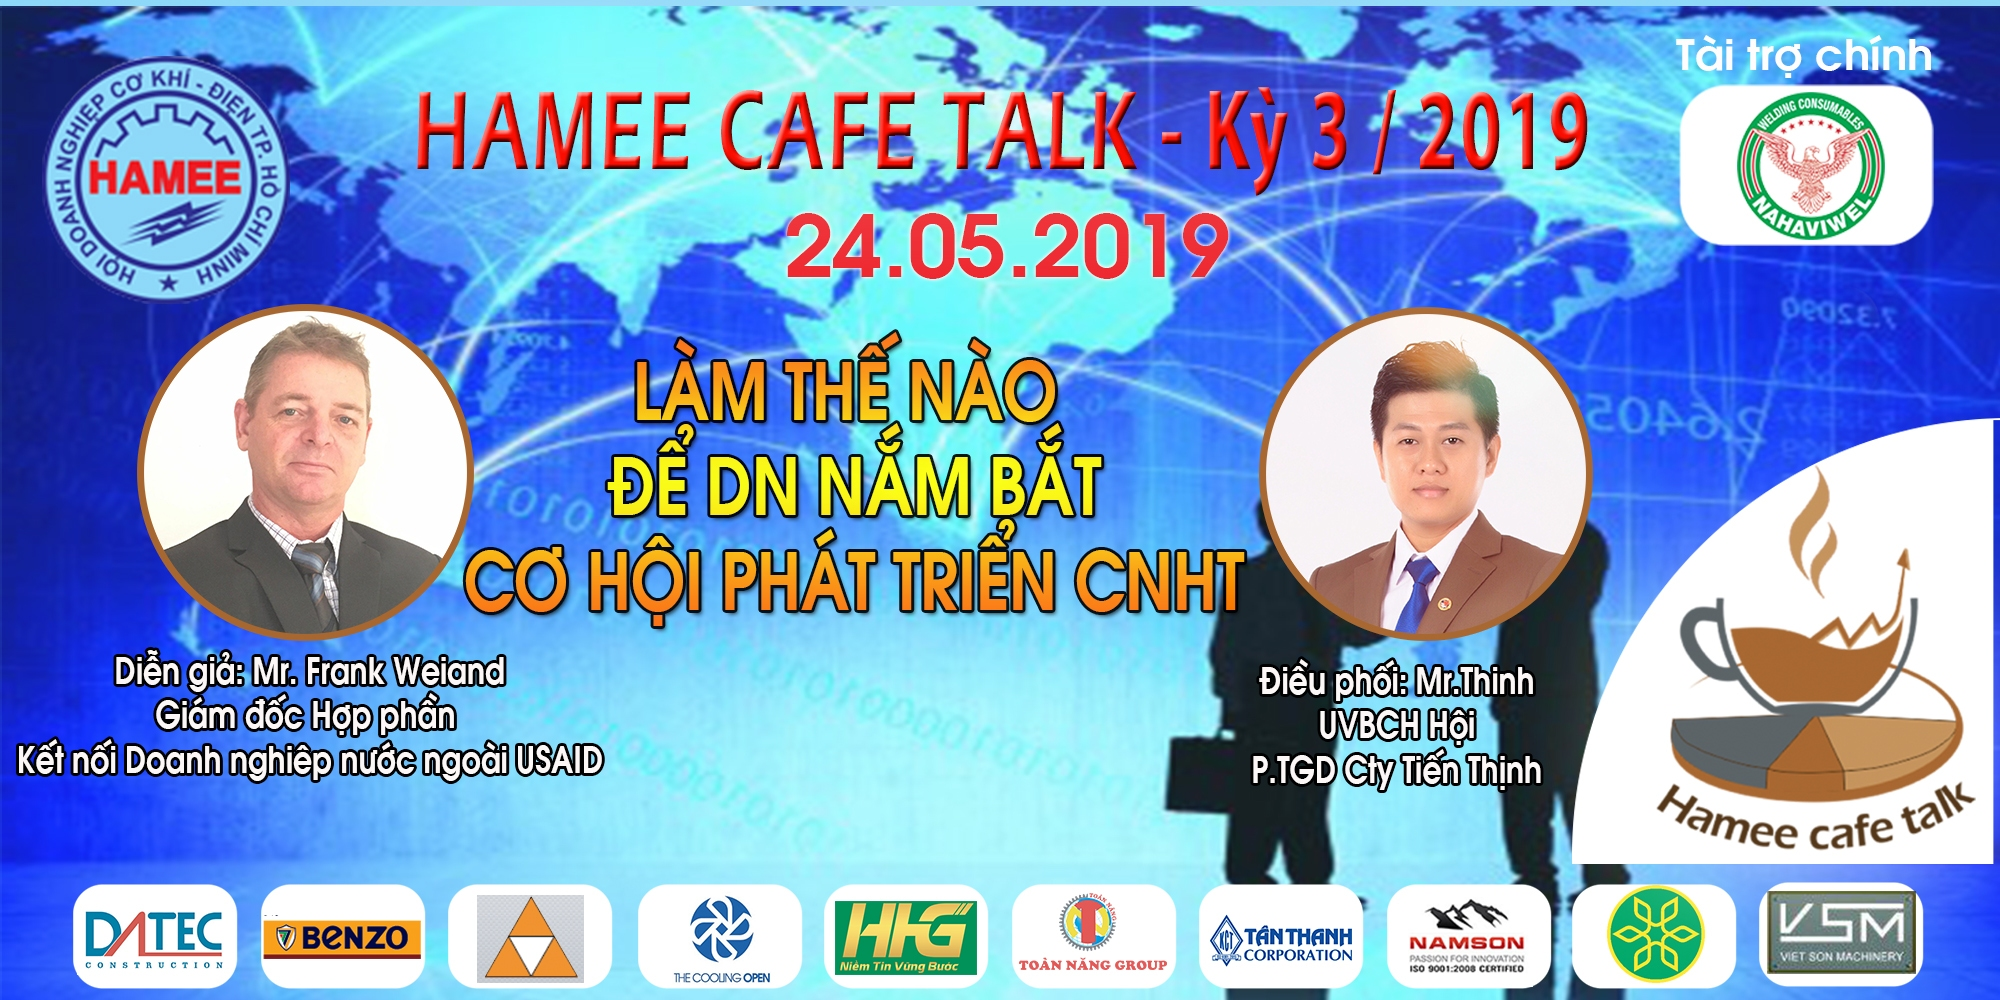 HAMEE cafe talk